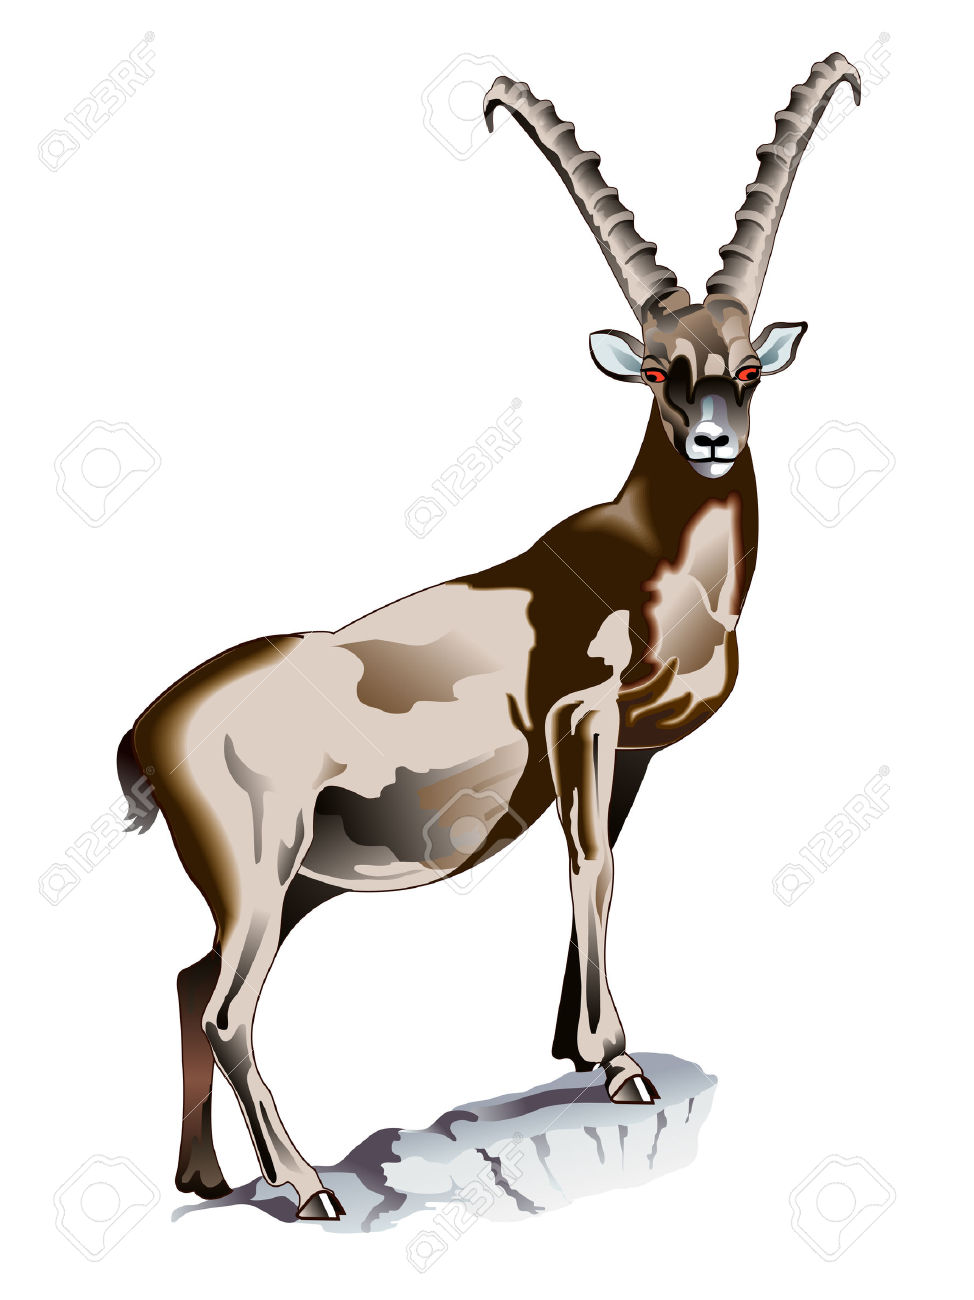 Alpine Ibex clipart #19, Download drawings